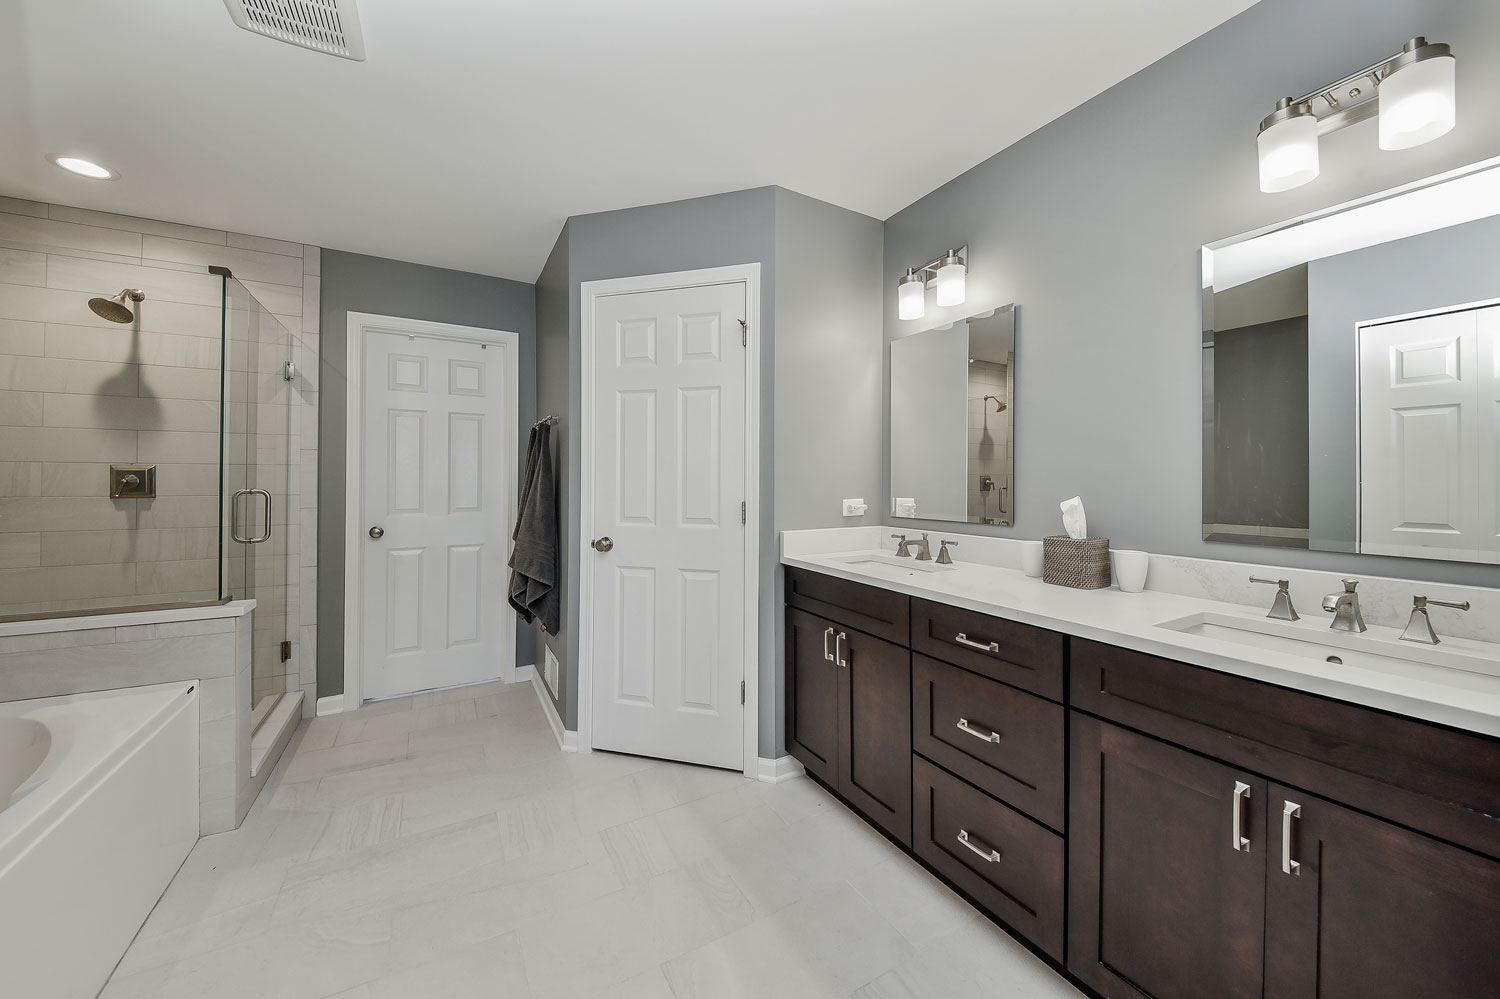 Pete mary 39 s master bathroom remodel pictures home for Remodel design services